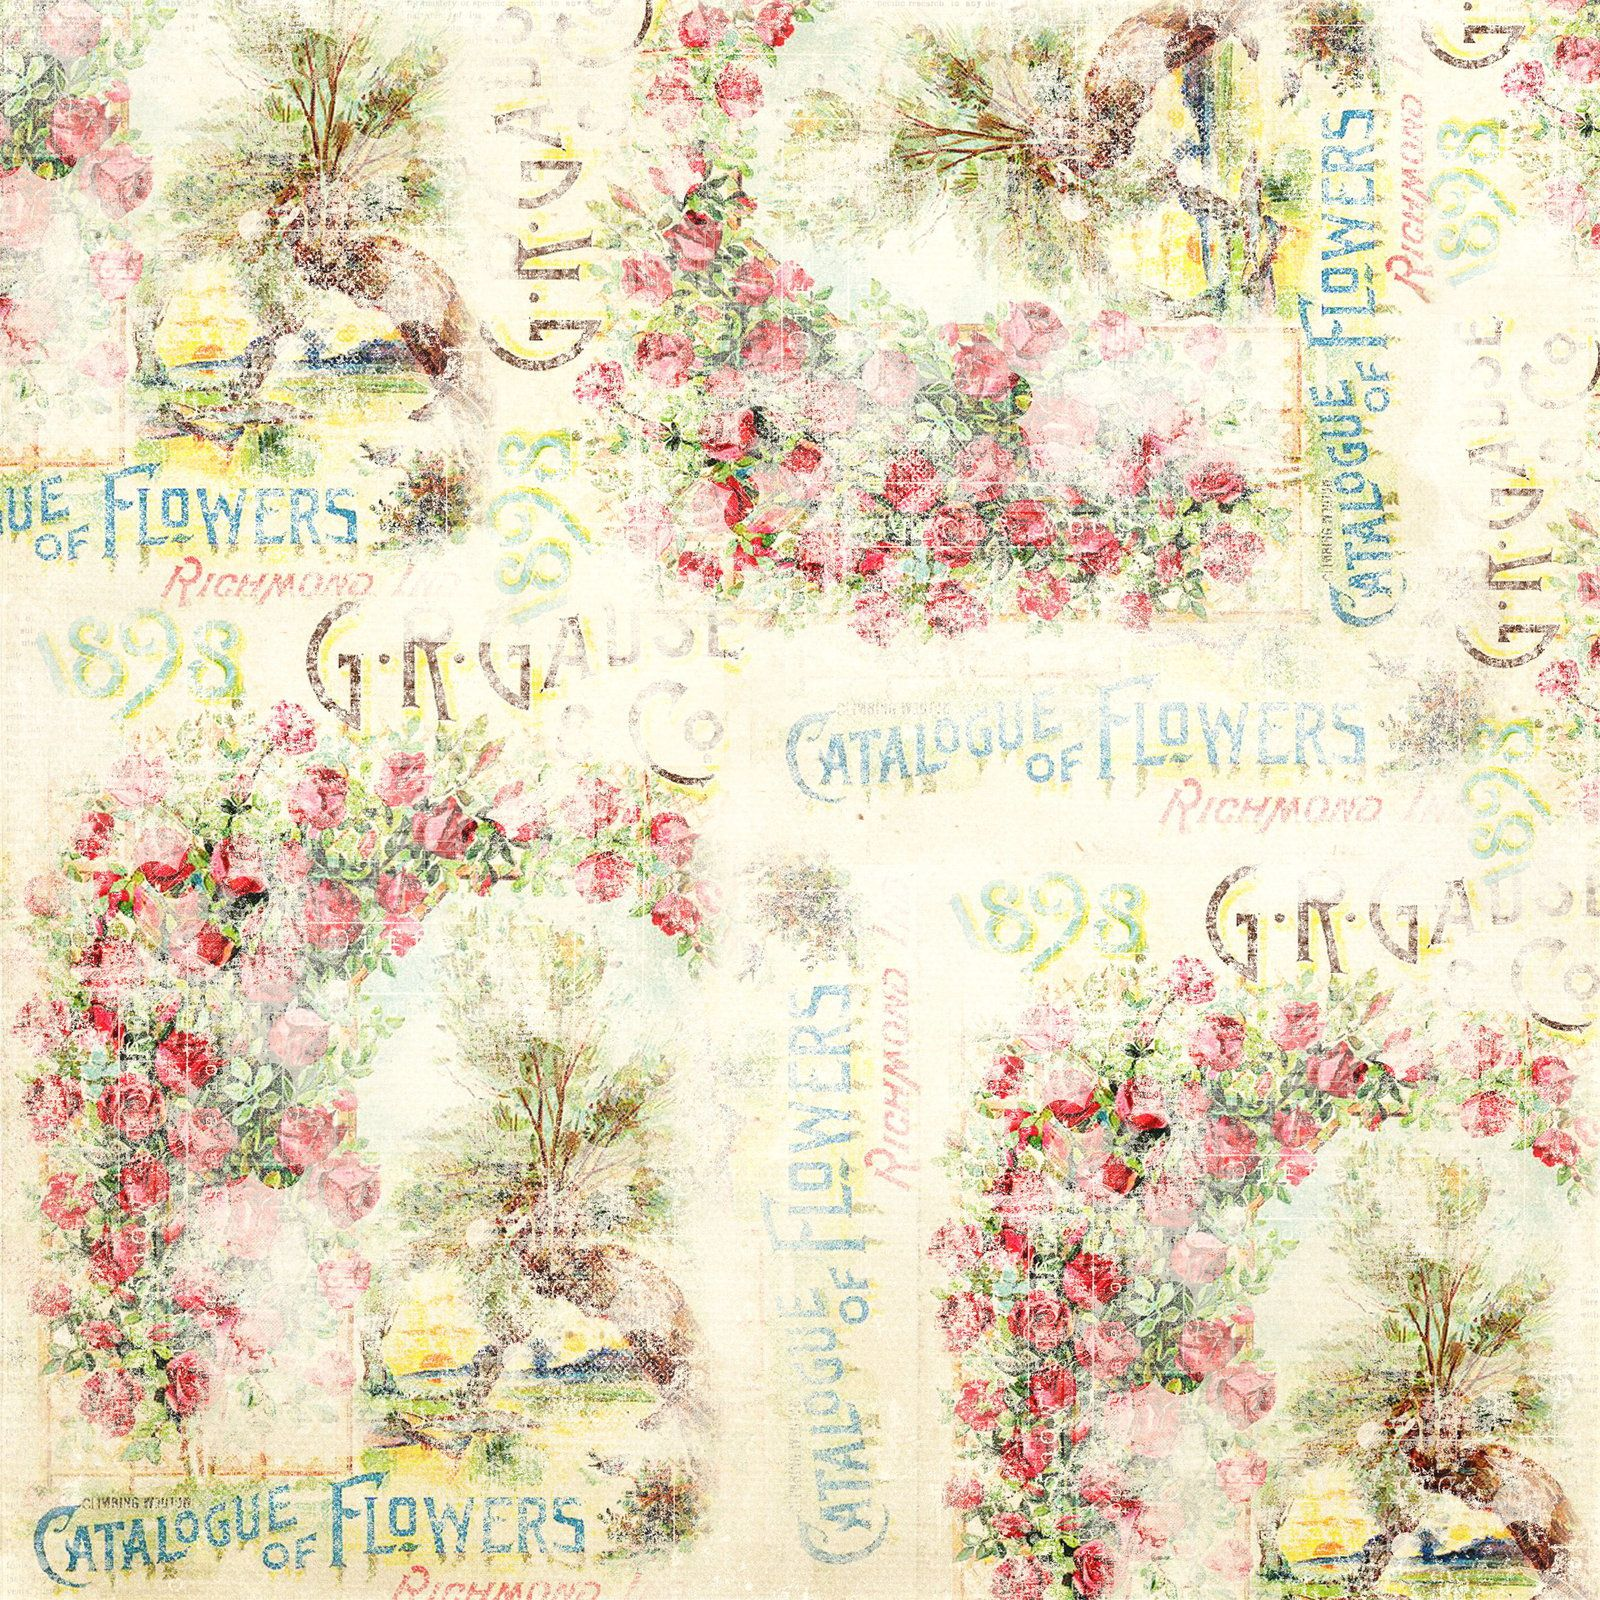 Jardin des roses (Textures) - Garden of roses  (Papers)